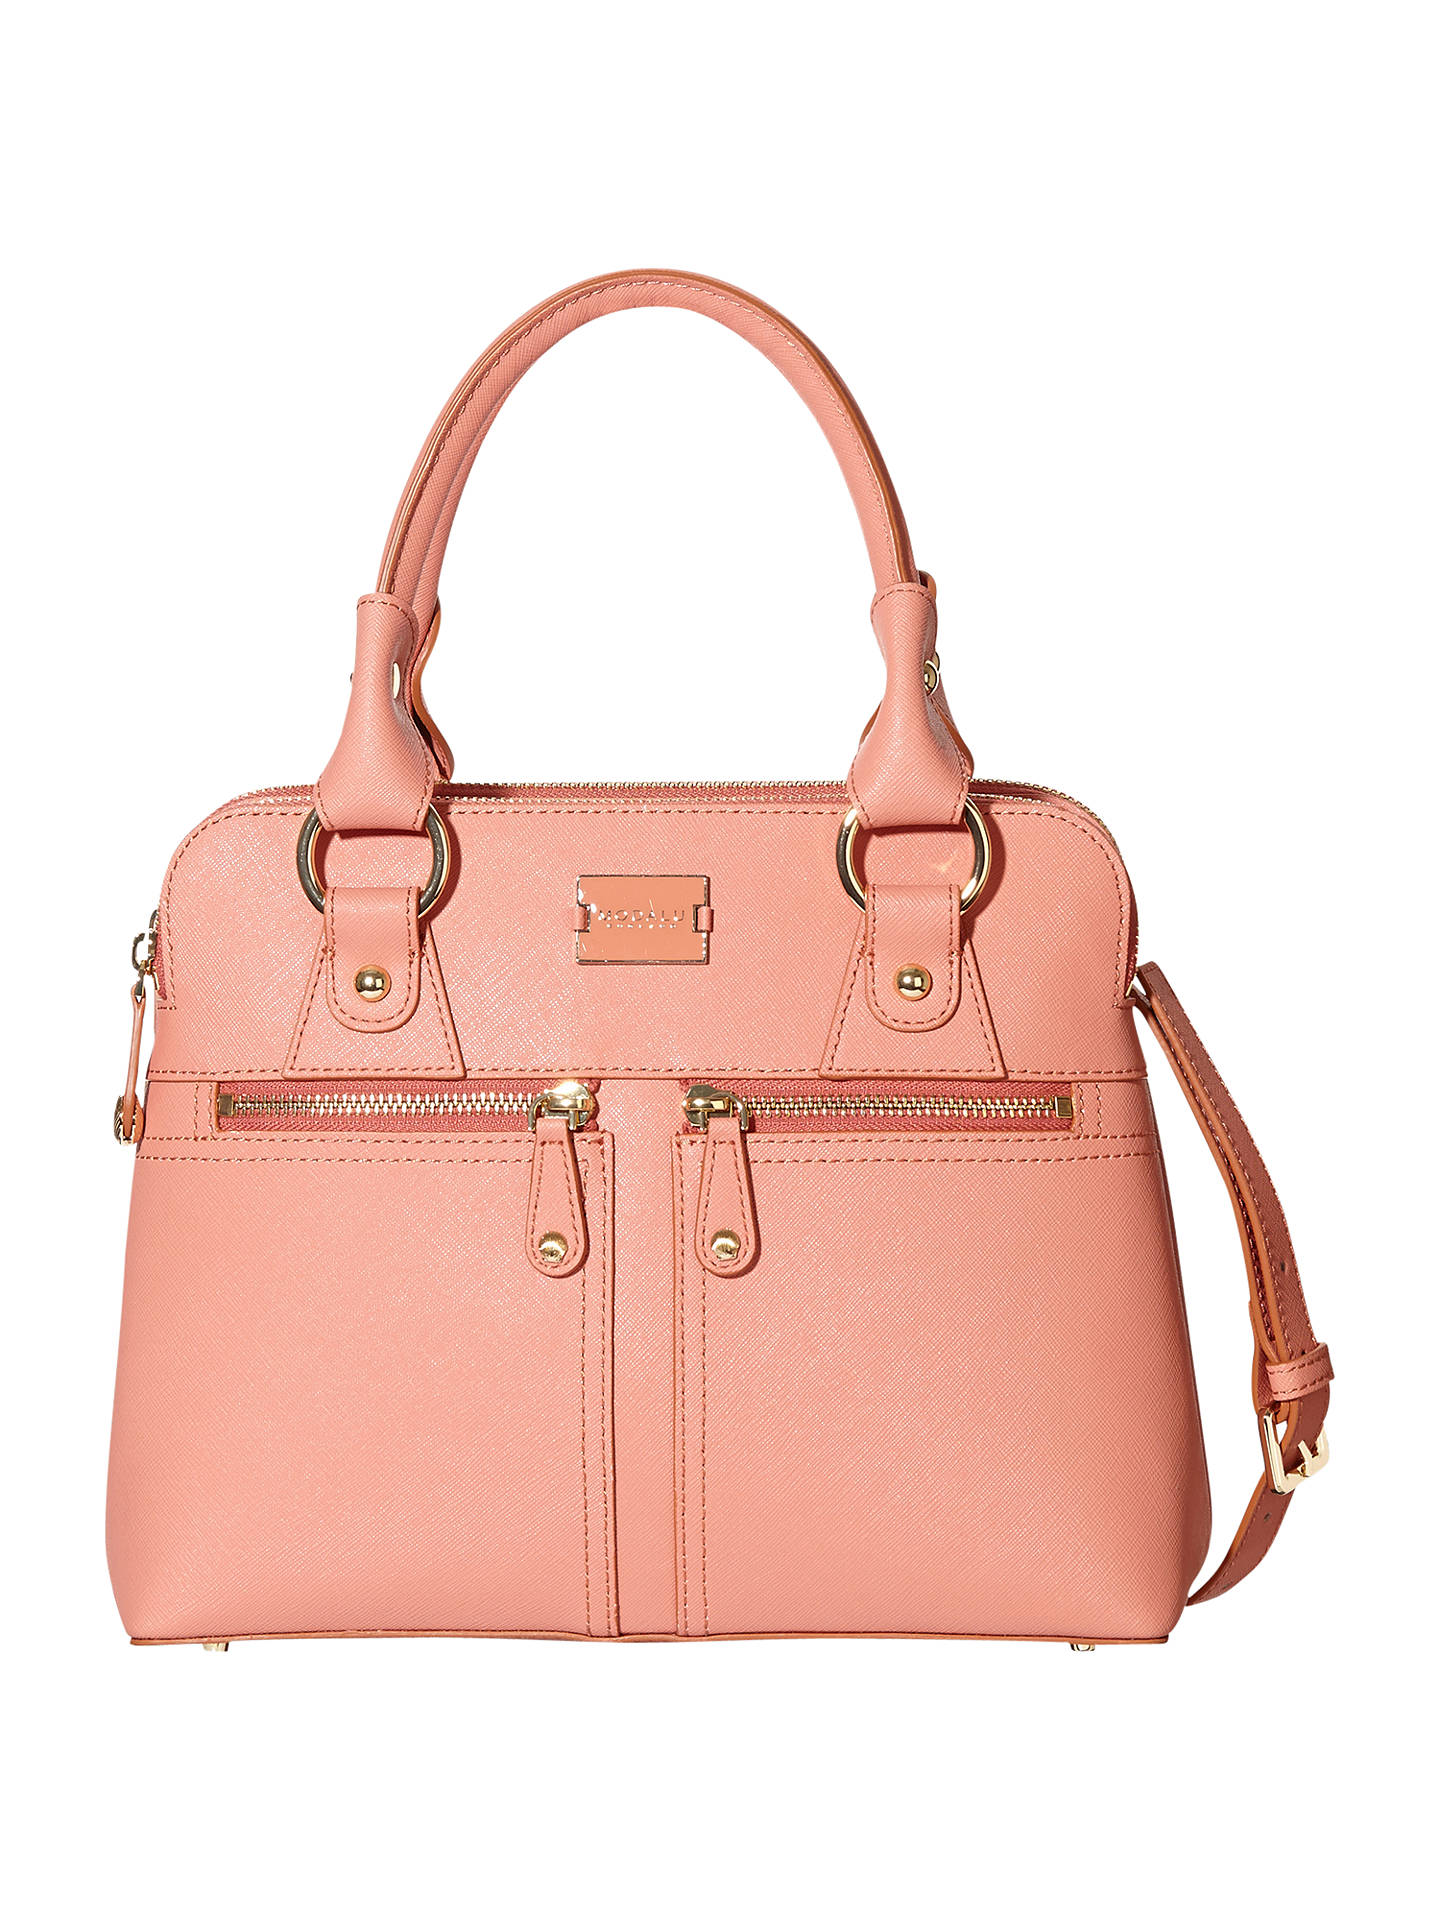 ad47b4ab67 Modalu Pippa Classic Small Leather Grab Bag at John Lewis   Partners